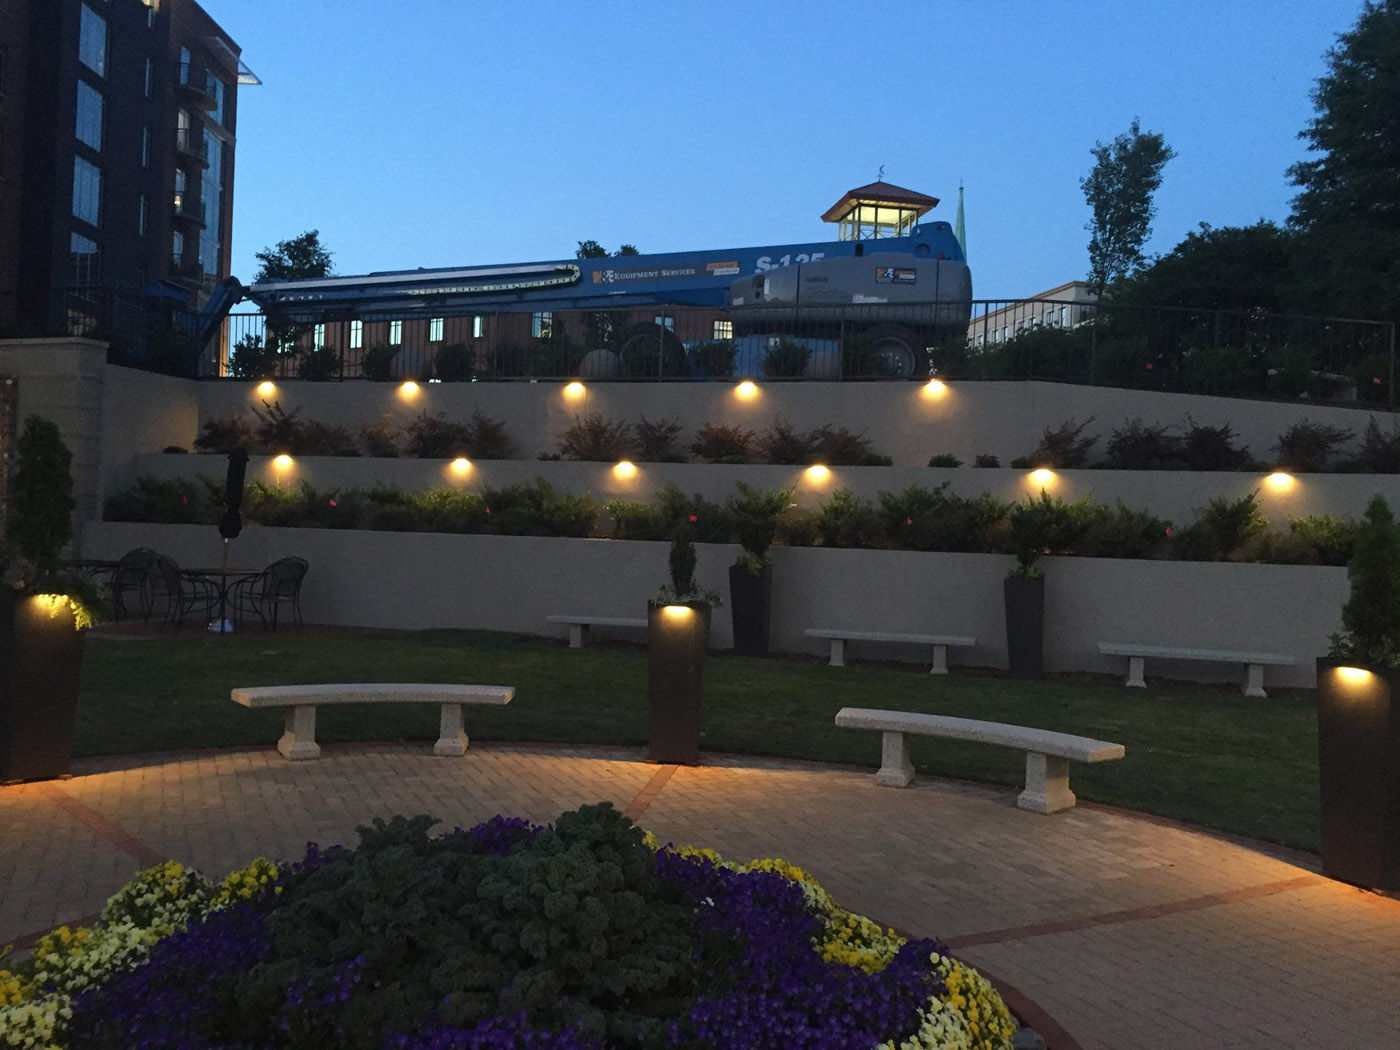 Attention Minneapolis Restauranteurs: Spruce Up Your Outdoor Dining Space  With Custom Commercial Outdoor Lighting